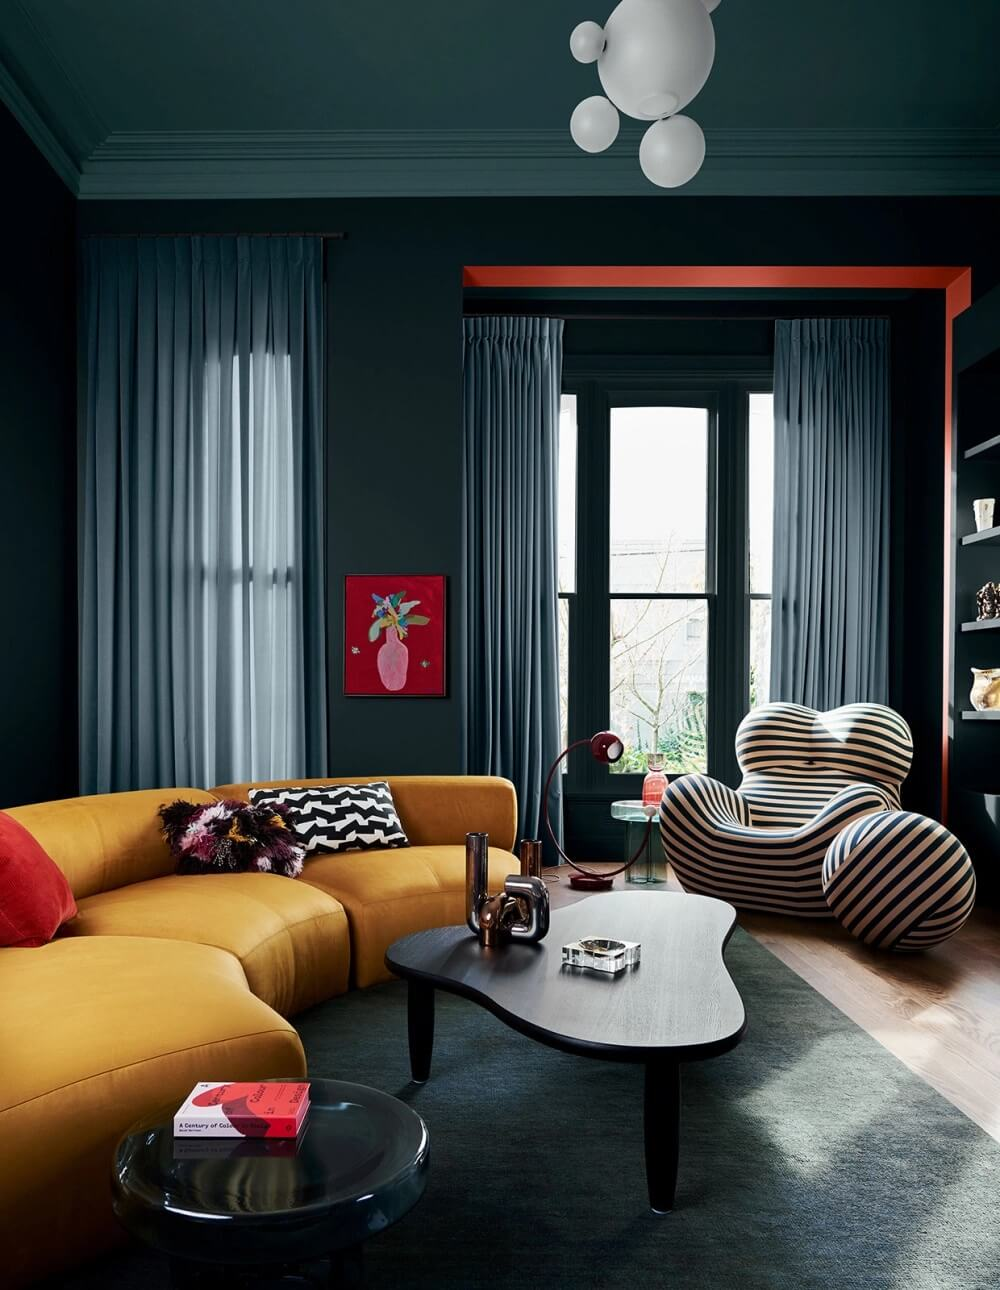 dulux-color-forecast-color-trends-2022-nordroom